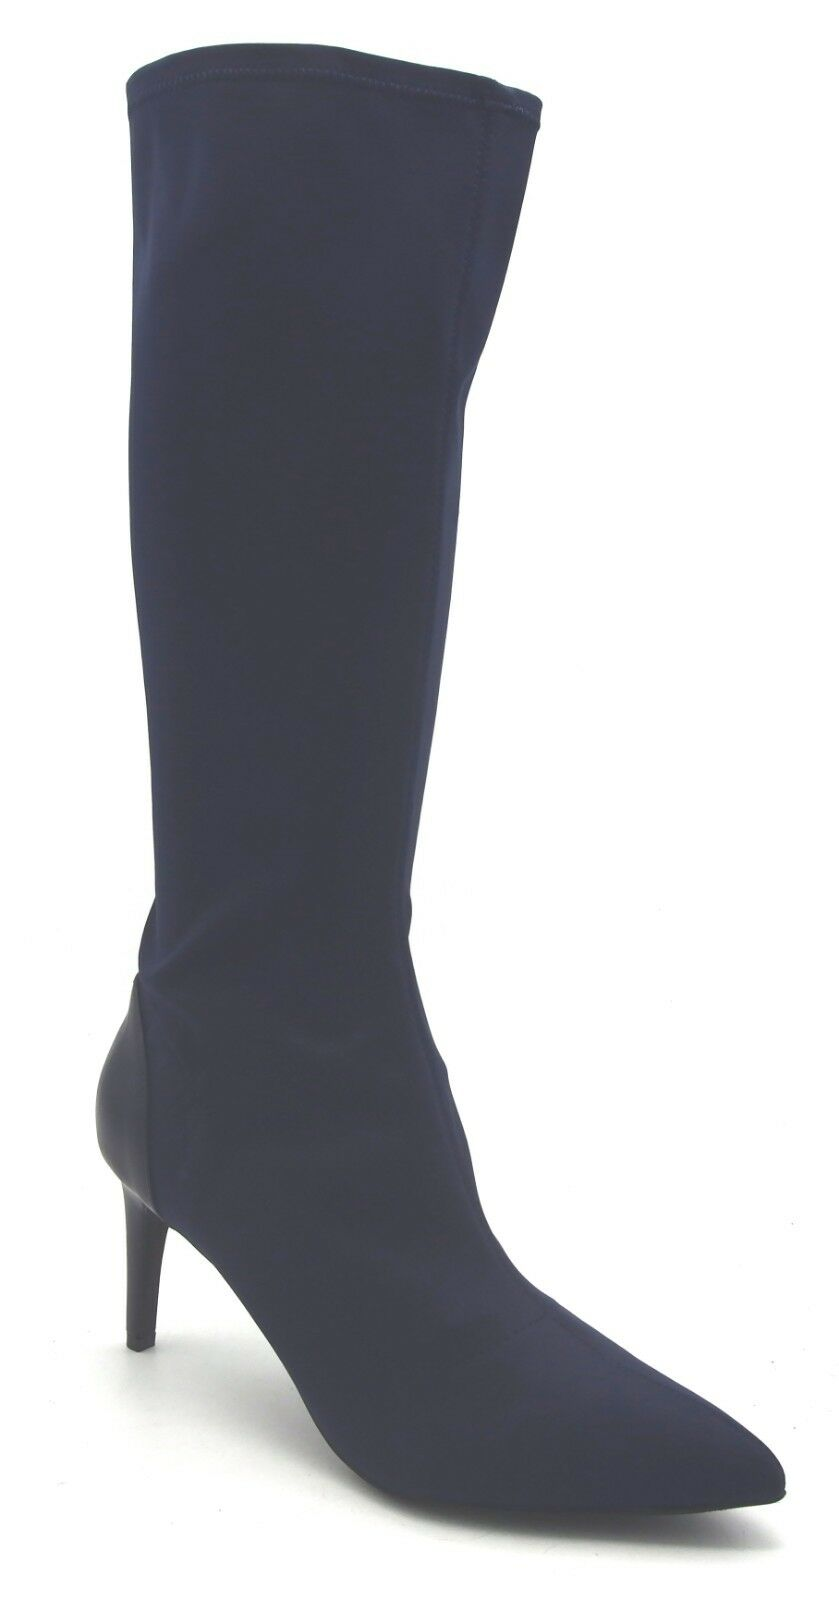 J7334 New Women's Charles by Charles David Superstar Navy Boot 9 M